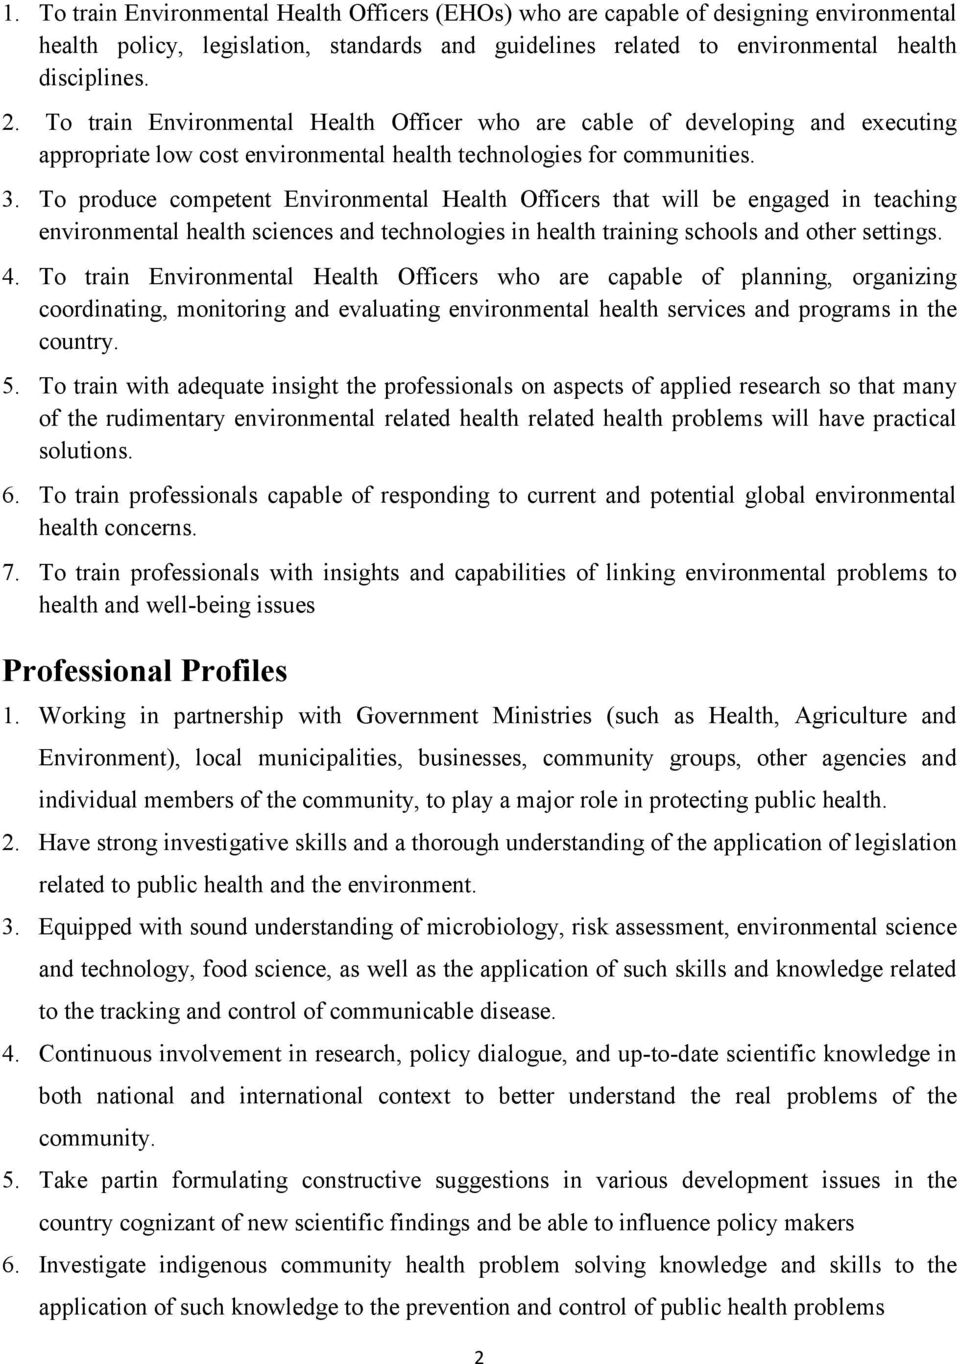 To produce competent Environmental Health Officers that will be engaged in teaching environmental health sciences and technologies in health training schools and other settings. 4.